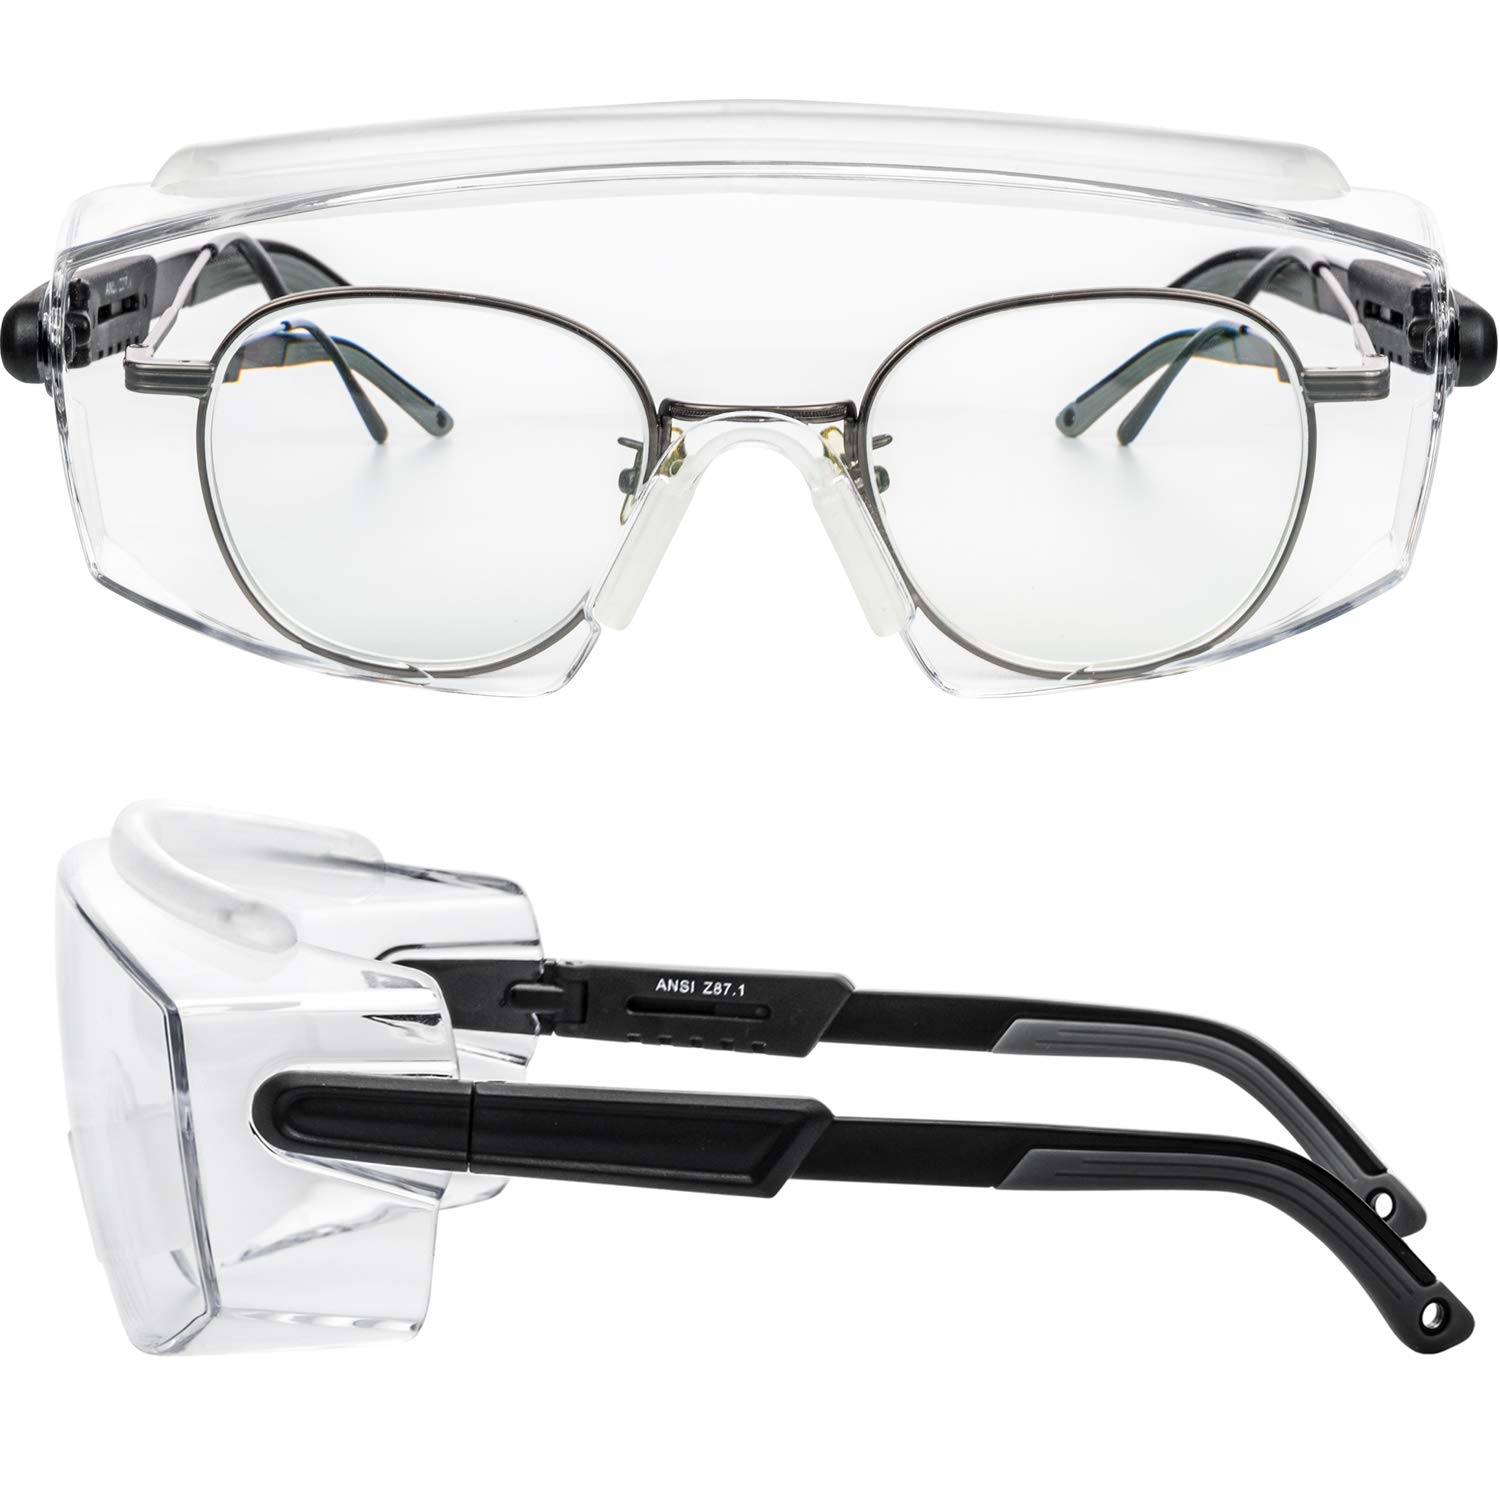 PAERDE Safety Glasses over Eyeglasses ,Anti Fog Safety Glasses Protective Goggles with Clear Scratch Resistant Wrap-Around Lenses and No-Slip Grips, UV Protection. Adjustable